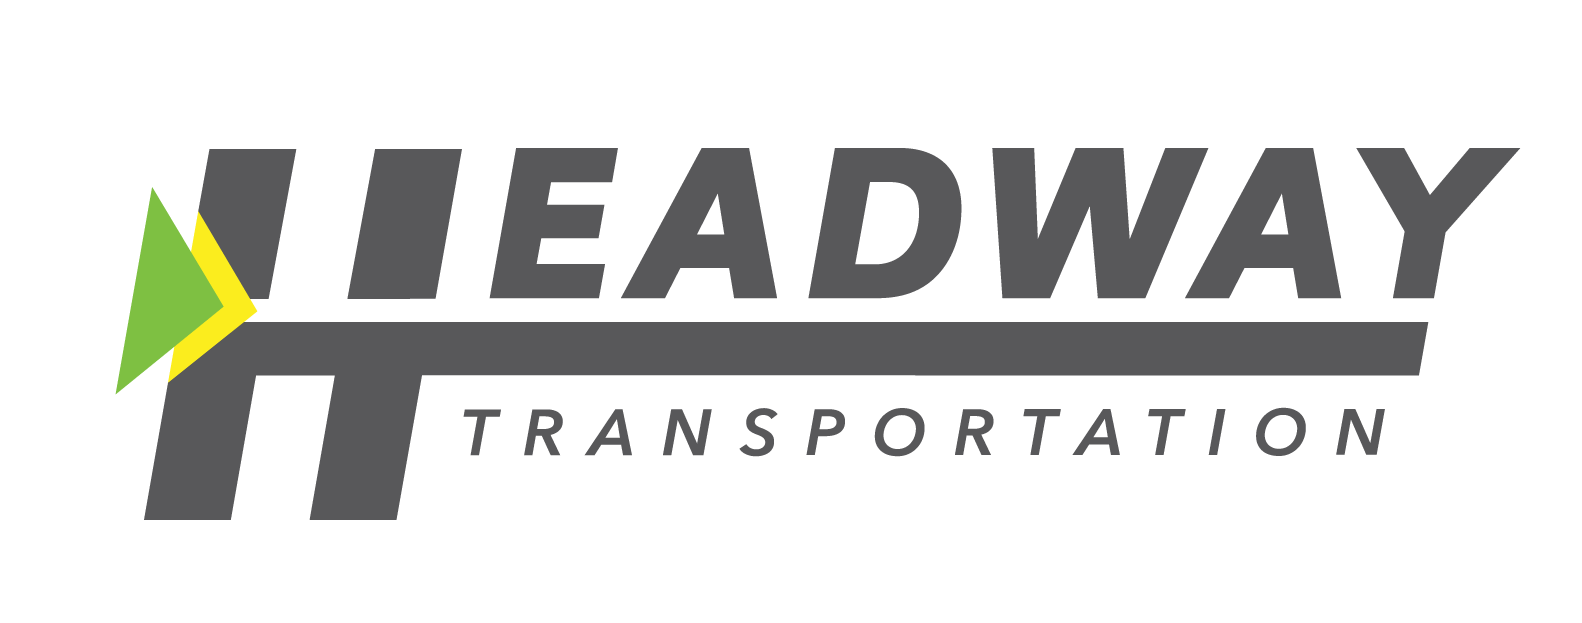 Headway Transportation, LLC